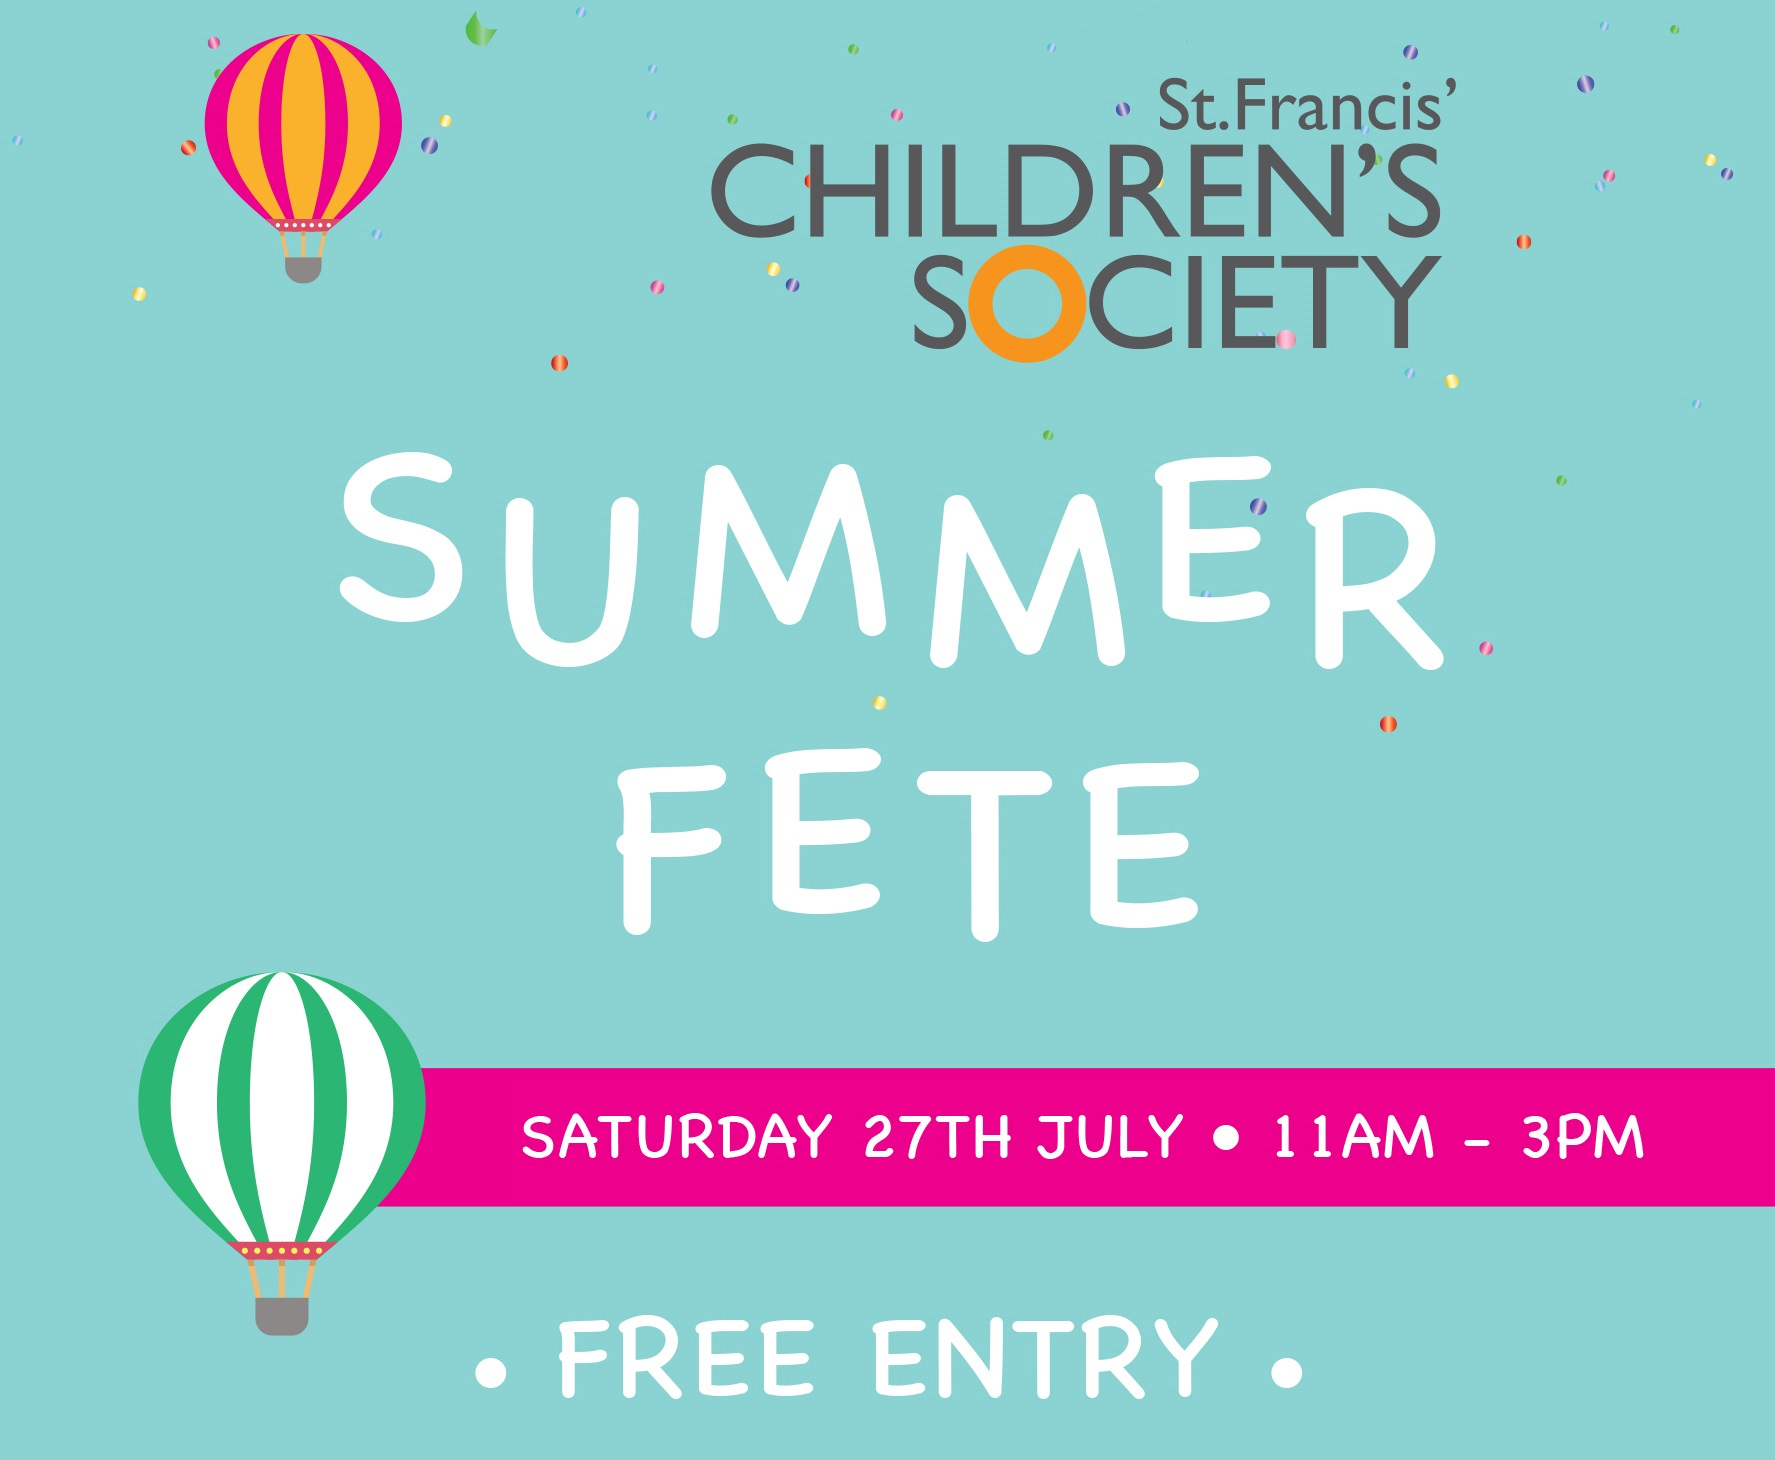 St Francis' Children's Society Summer Fete - 27th July